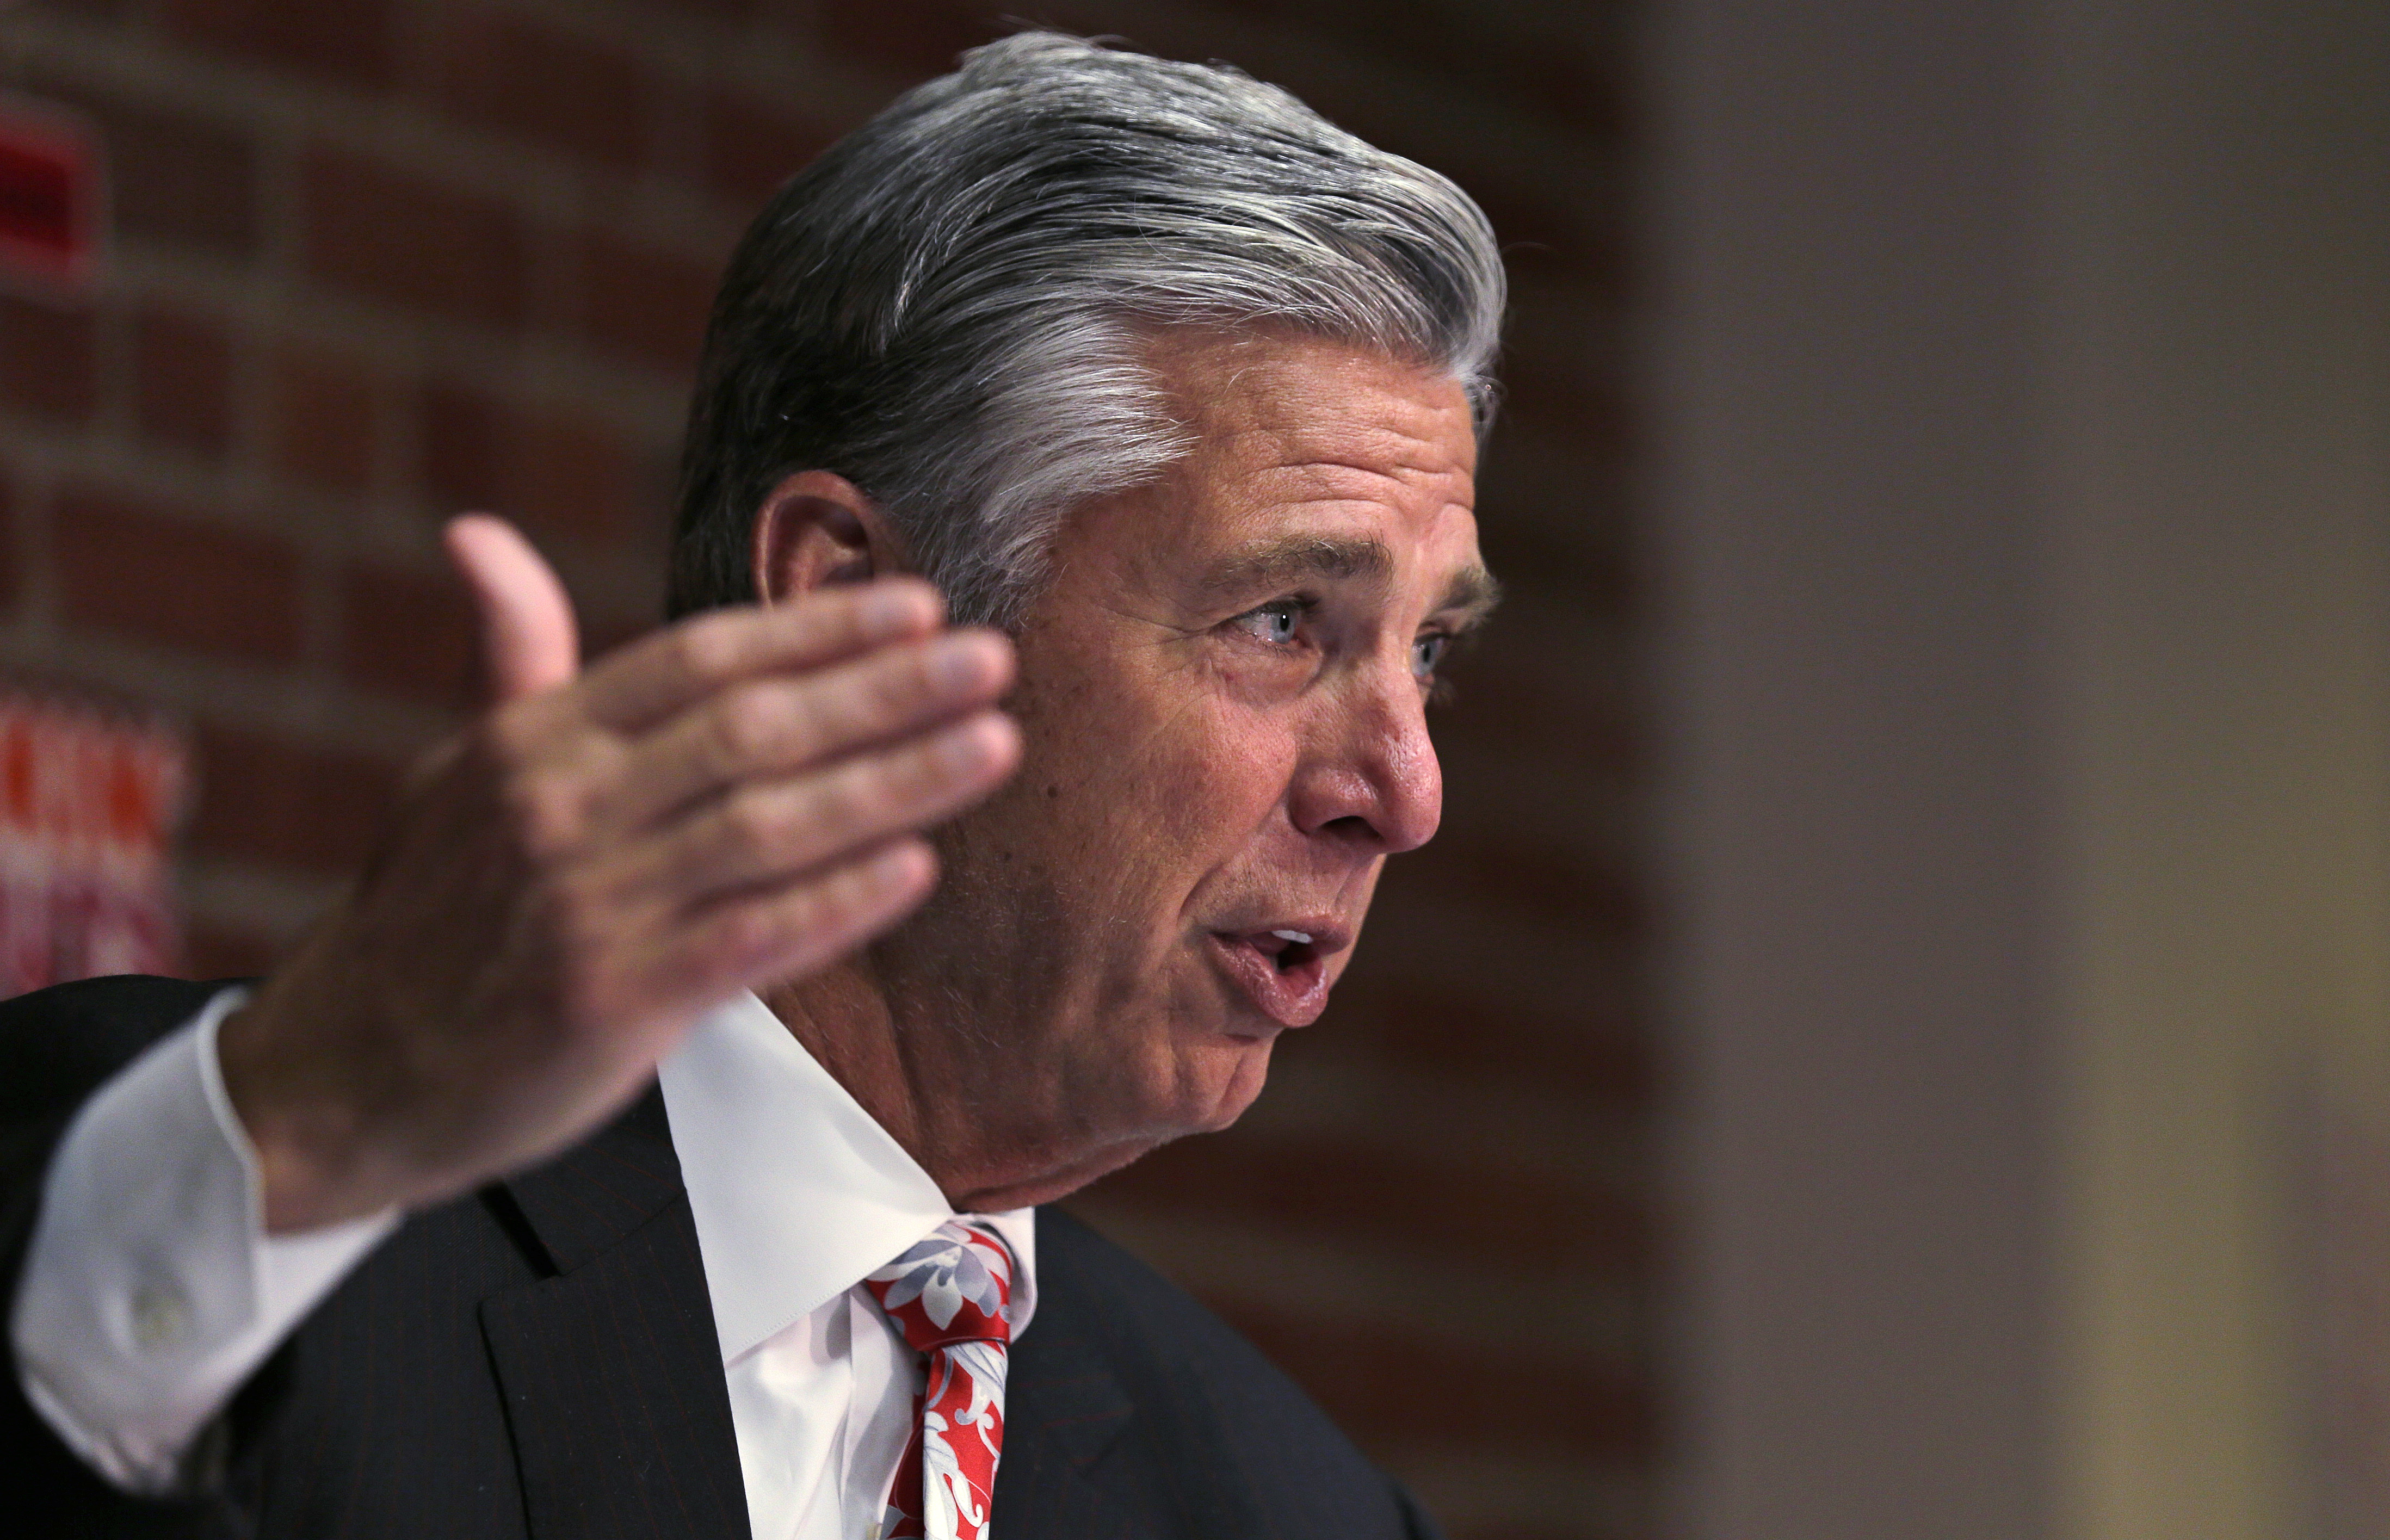 Boston Red Sox President of Baseball Operations Dave Dombrowski gestures as he talks with reporters during a baseball news conference at Fenway Park in Boston, Tuesday, Oct. 13, 2015. (AP Photo/Charles Krupa)